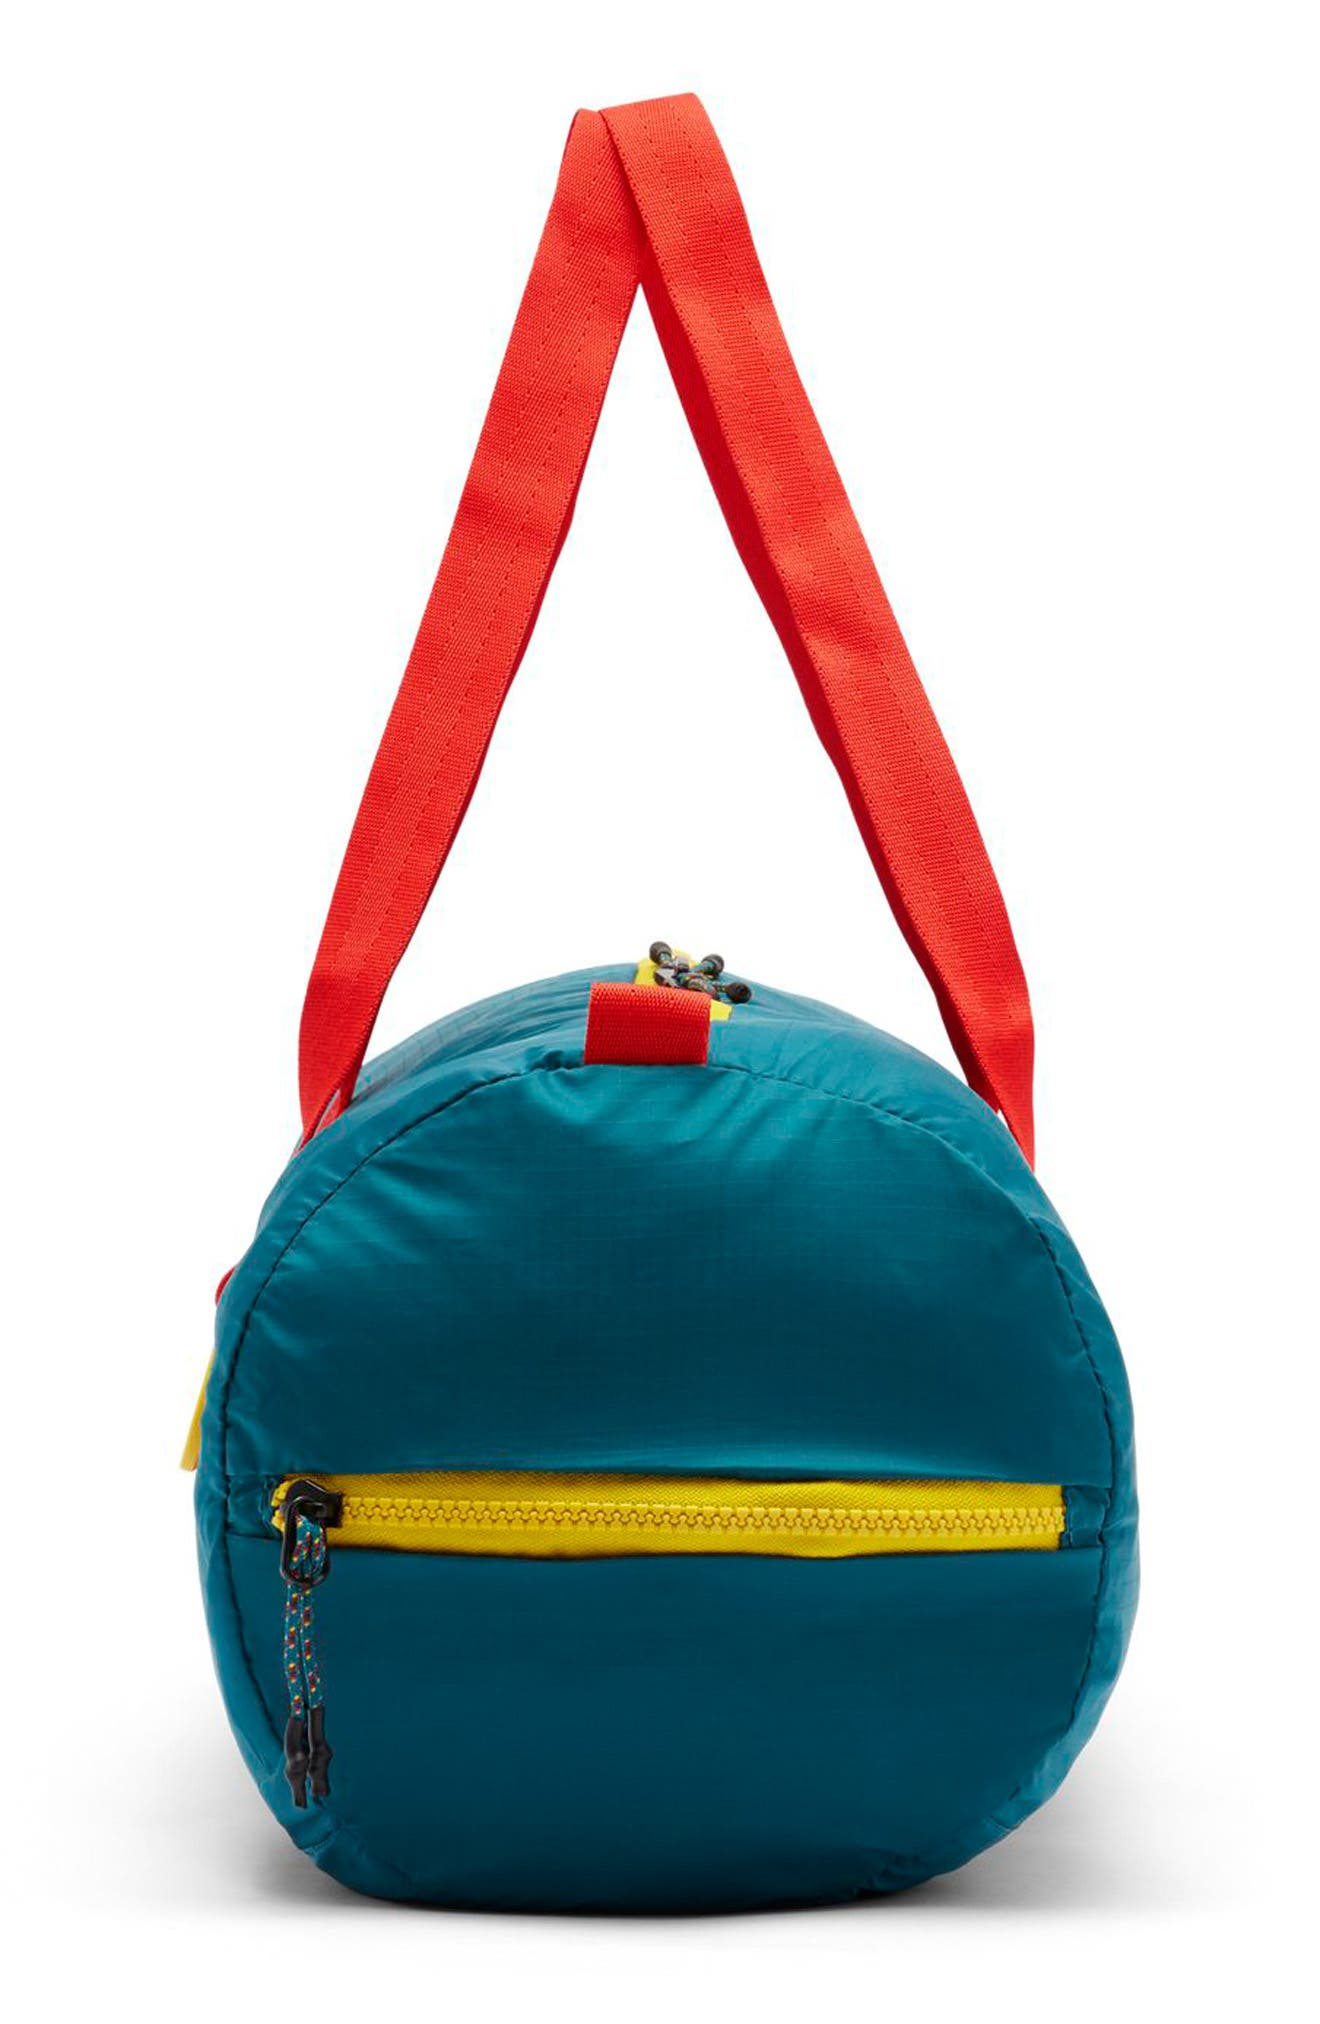 Packable Duffel Bag,                             Alternate thumbnail 3, color,                             GEODE TEAL/ HABANERO RED